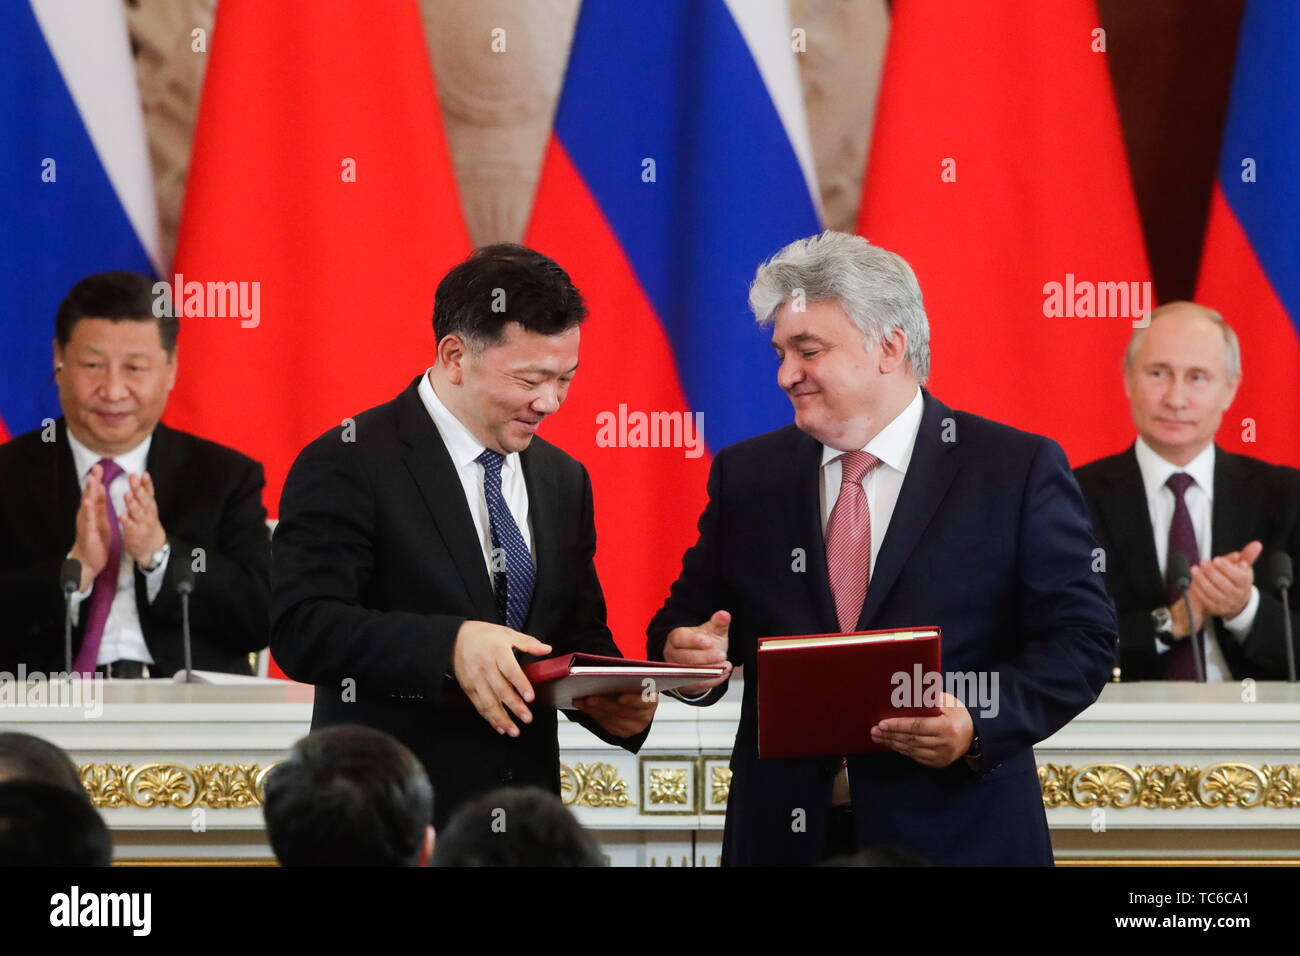 Moscow, Russia. 05th June, 2019. MOSCOW, RUSSIA - JUNE 5, 2019: China Media Group Head Shen Haixiong, SPB TV General Director Kirill Filippov (L-R front), China's President Xi Jinping, Russia's President Vladimir Putin (L-R back) at a ceremony to sign joint documents following Russian-Chinese talks at the Moscow Kremlin. Mikhail Metzel/TASS Credit: ITAR-TASS News Agency/Alamy Live News - Stock Image